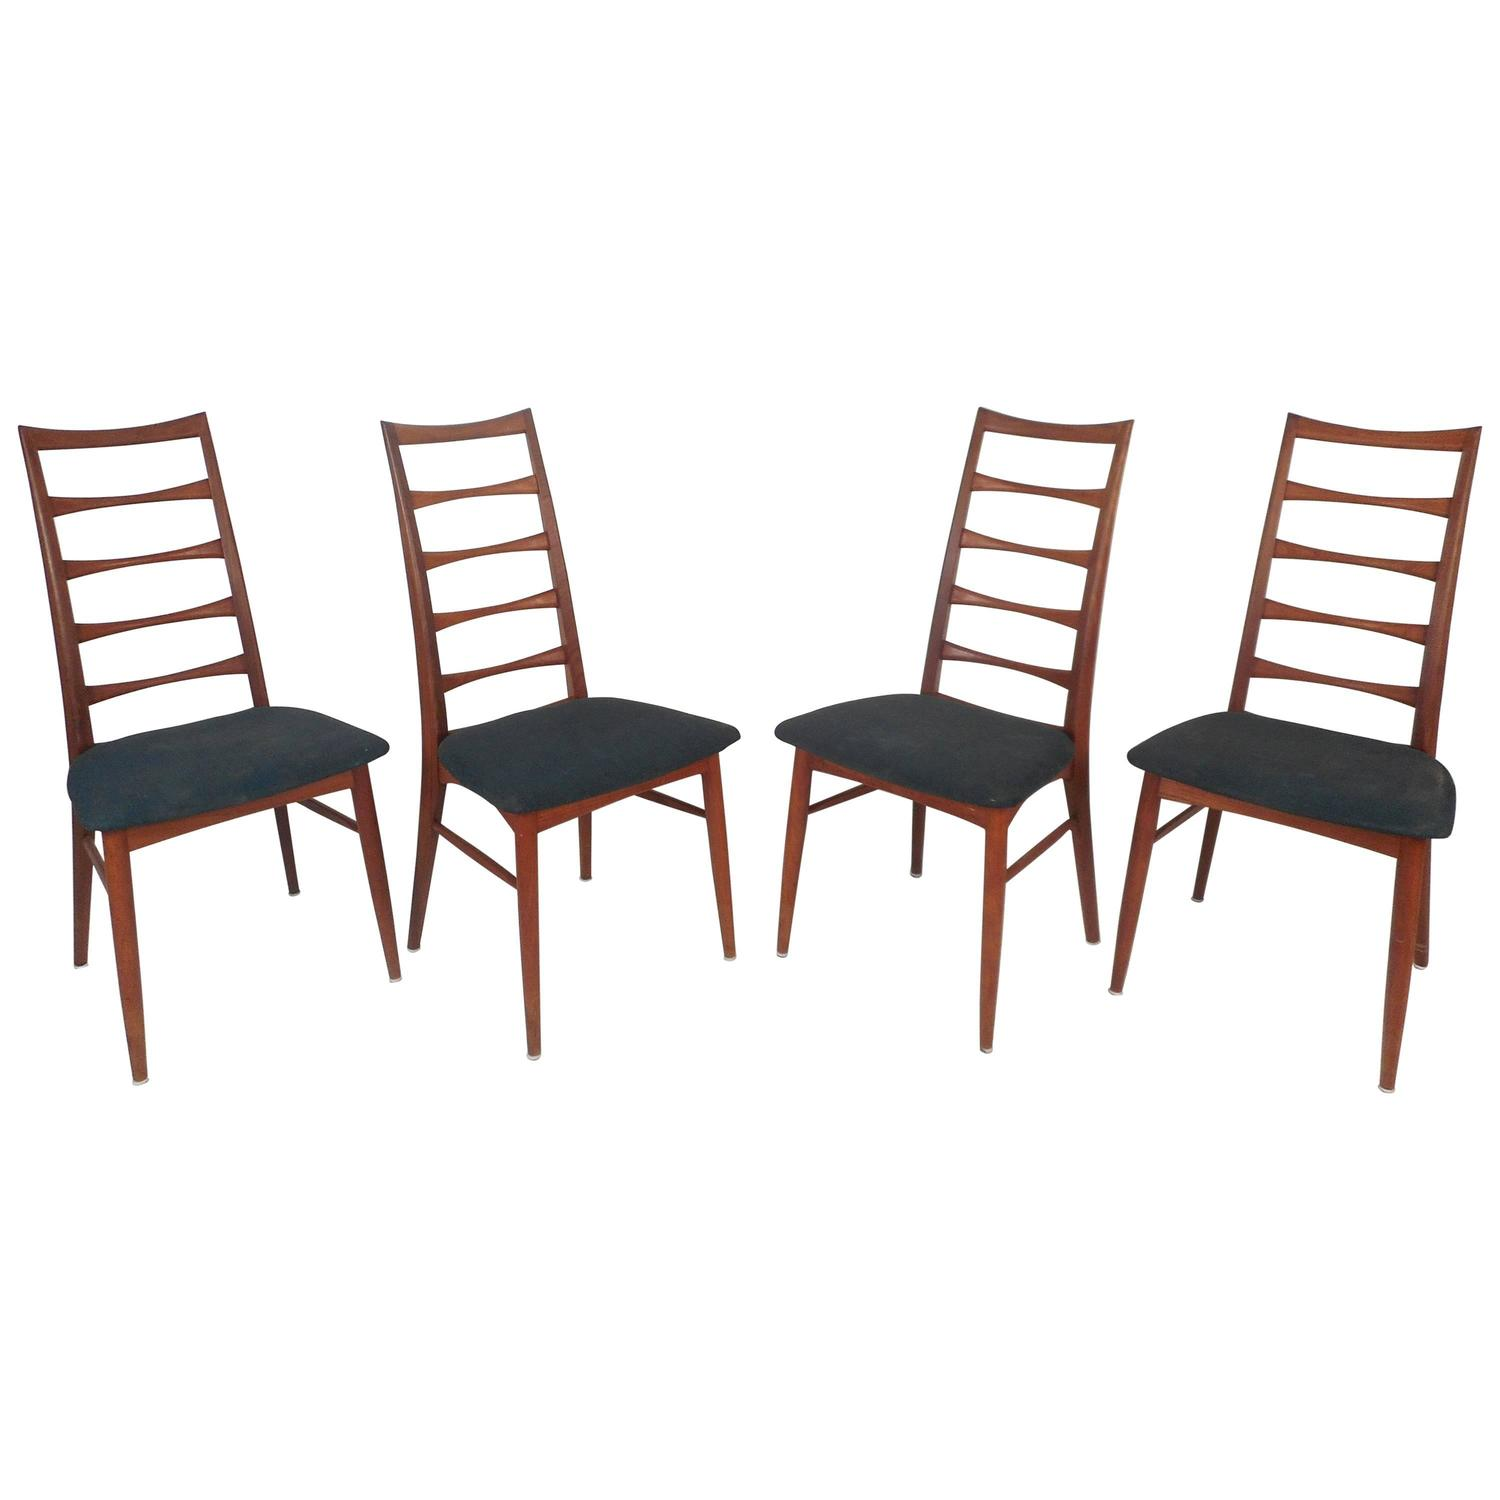 Architectural Modern Dining Chairs by Morris of California Mid